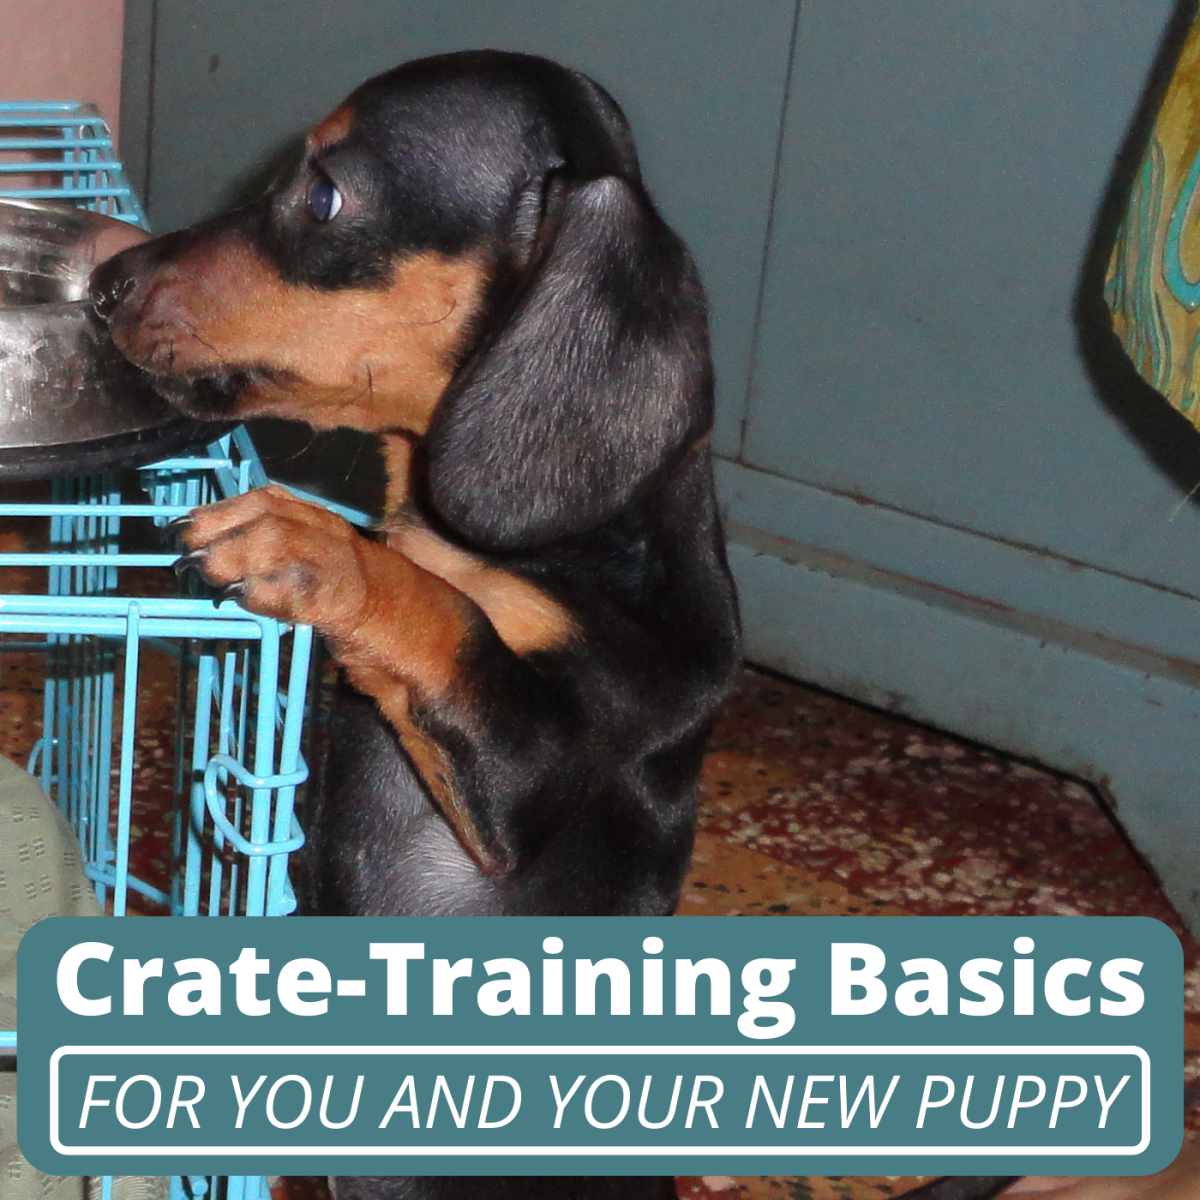 Crate training your puppy as soon as possible could spare them from unnecessary stress and anxiety down the line.